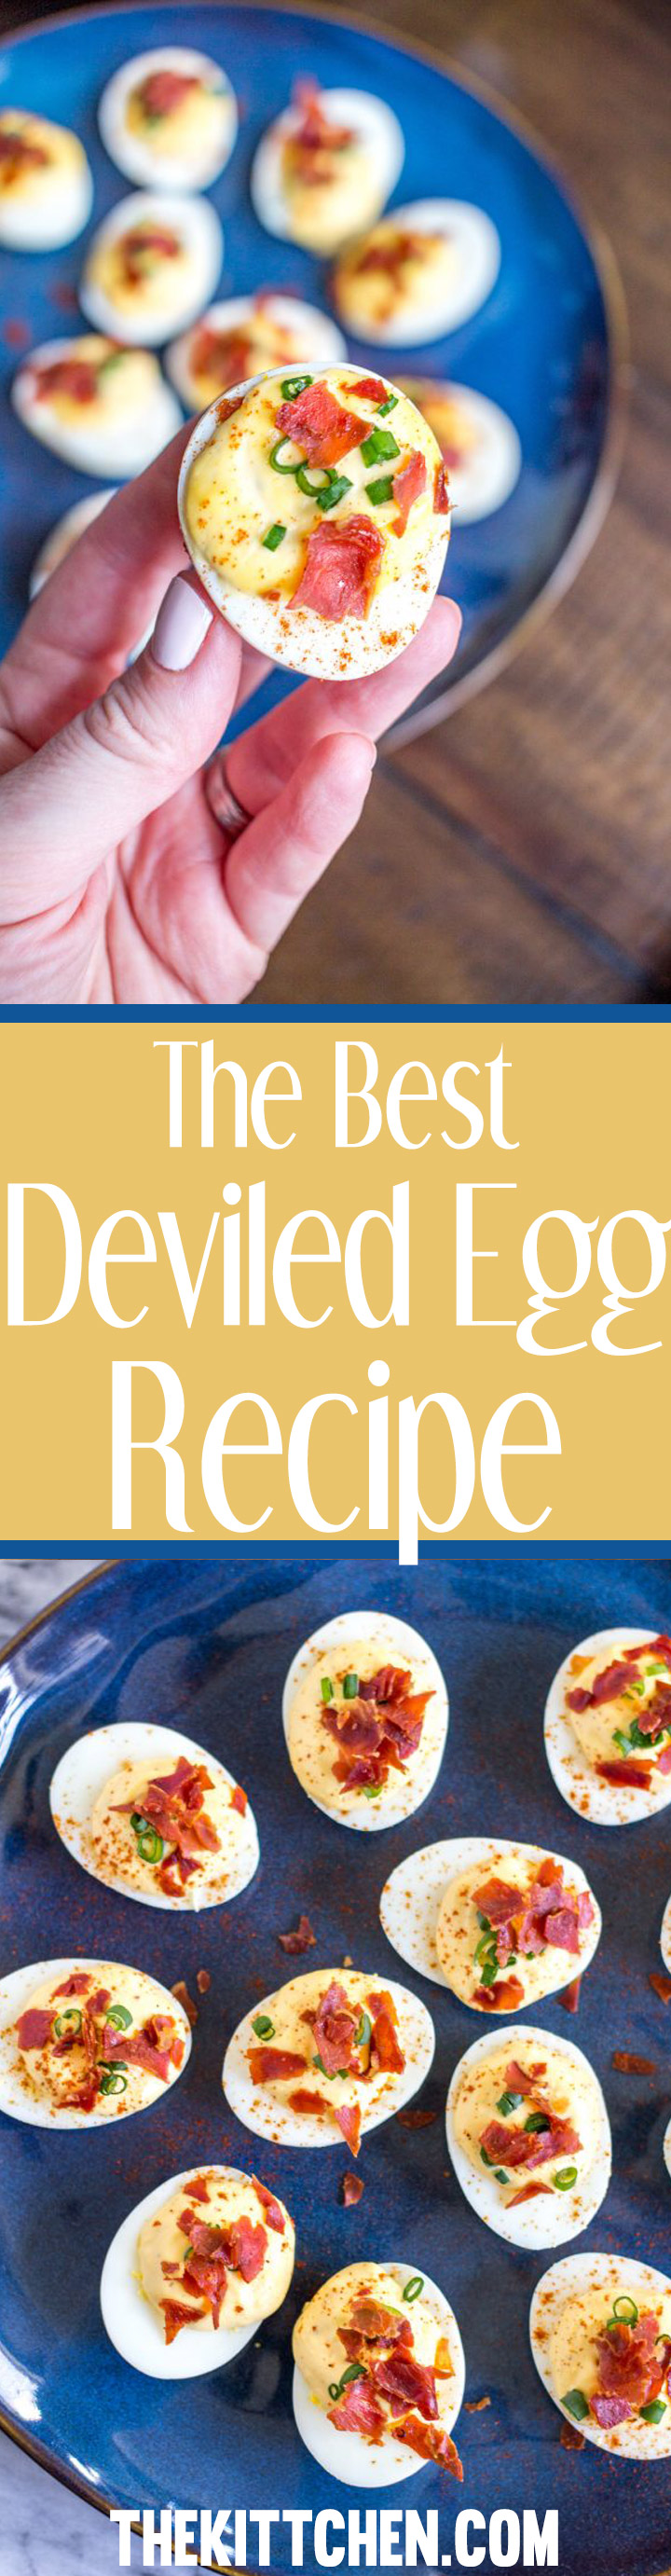 This is the best deviled egg recipe - these deviled eggs have the perfect balance of richness from the egg yolk and mayonnaise plus seasoning from mustard, lemon, and sriracha. A crispy prosciutto garnish makes this deviled egg recipe extra special.